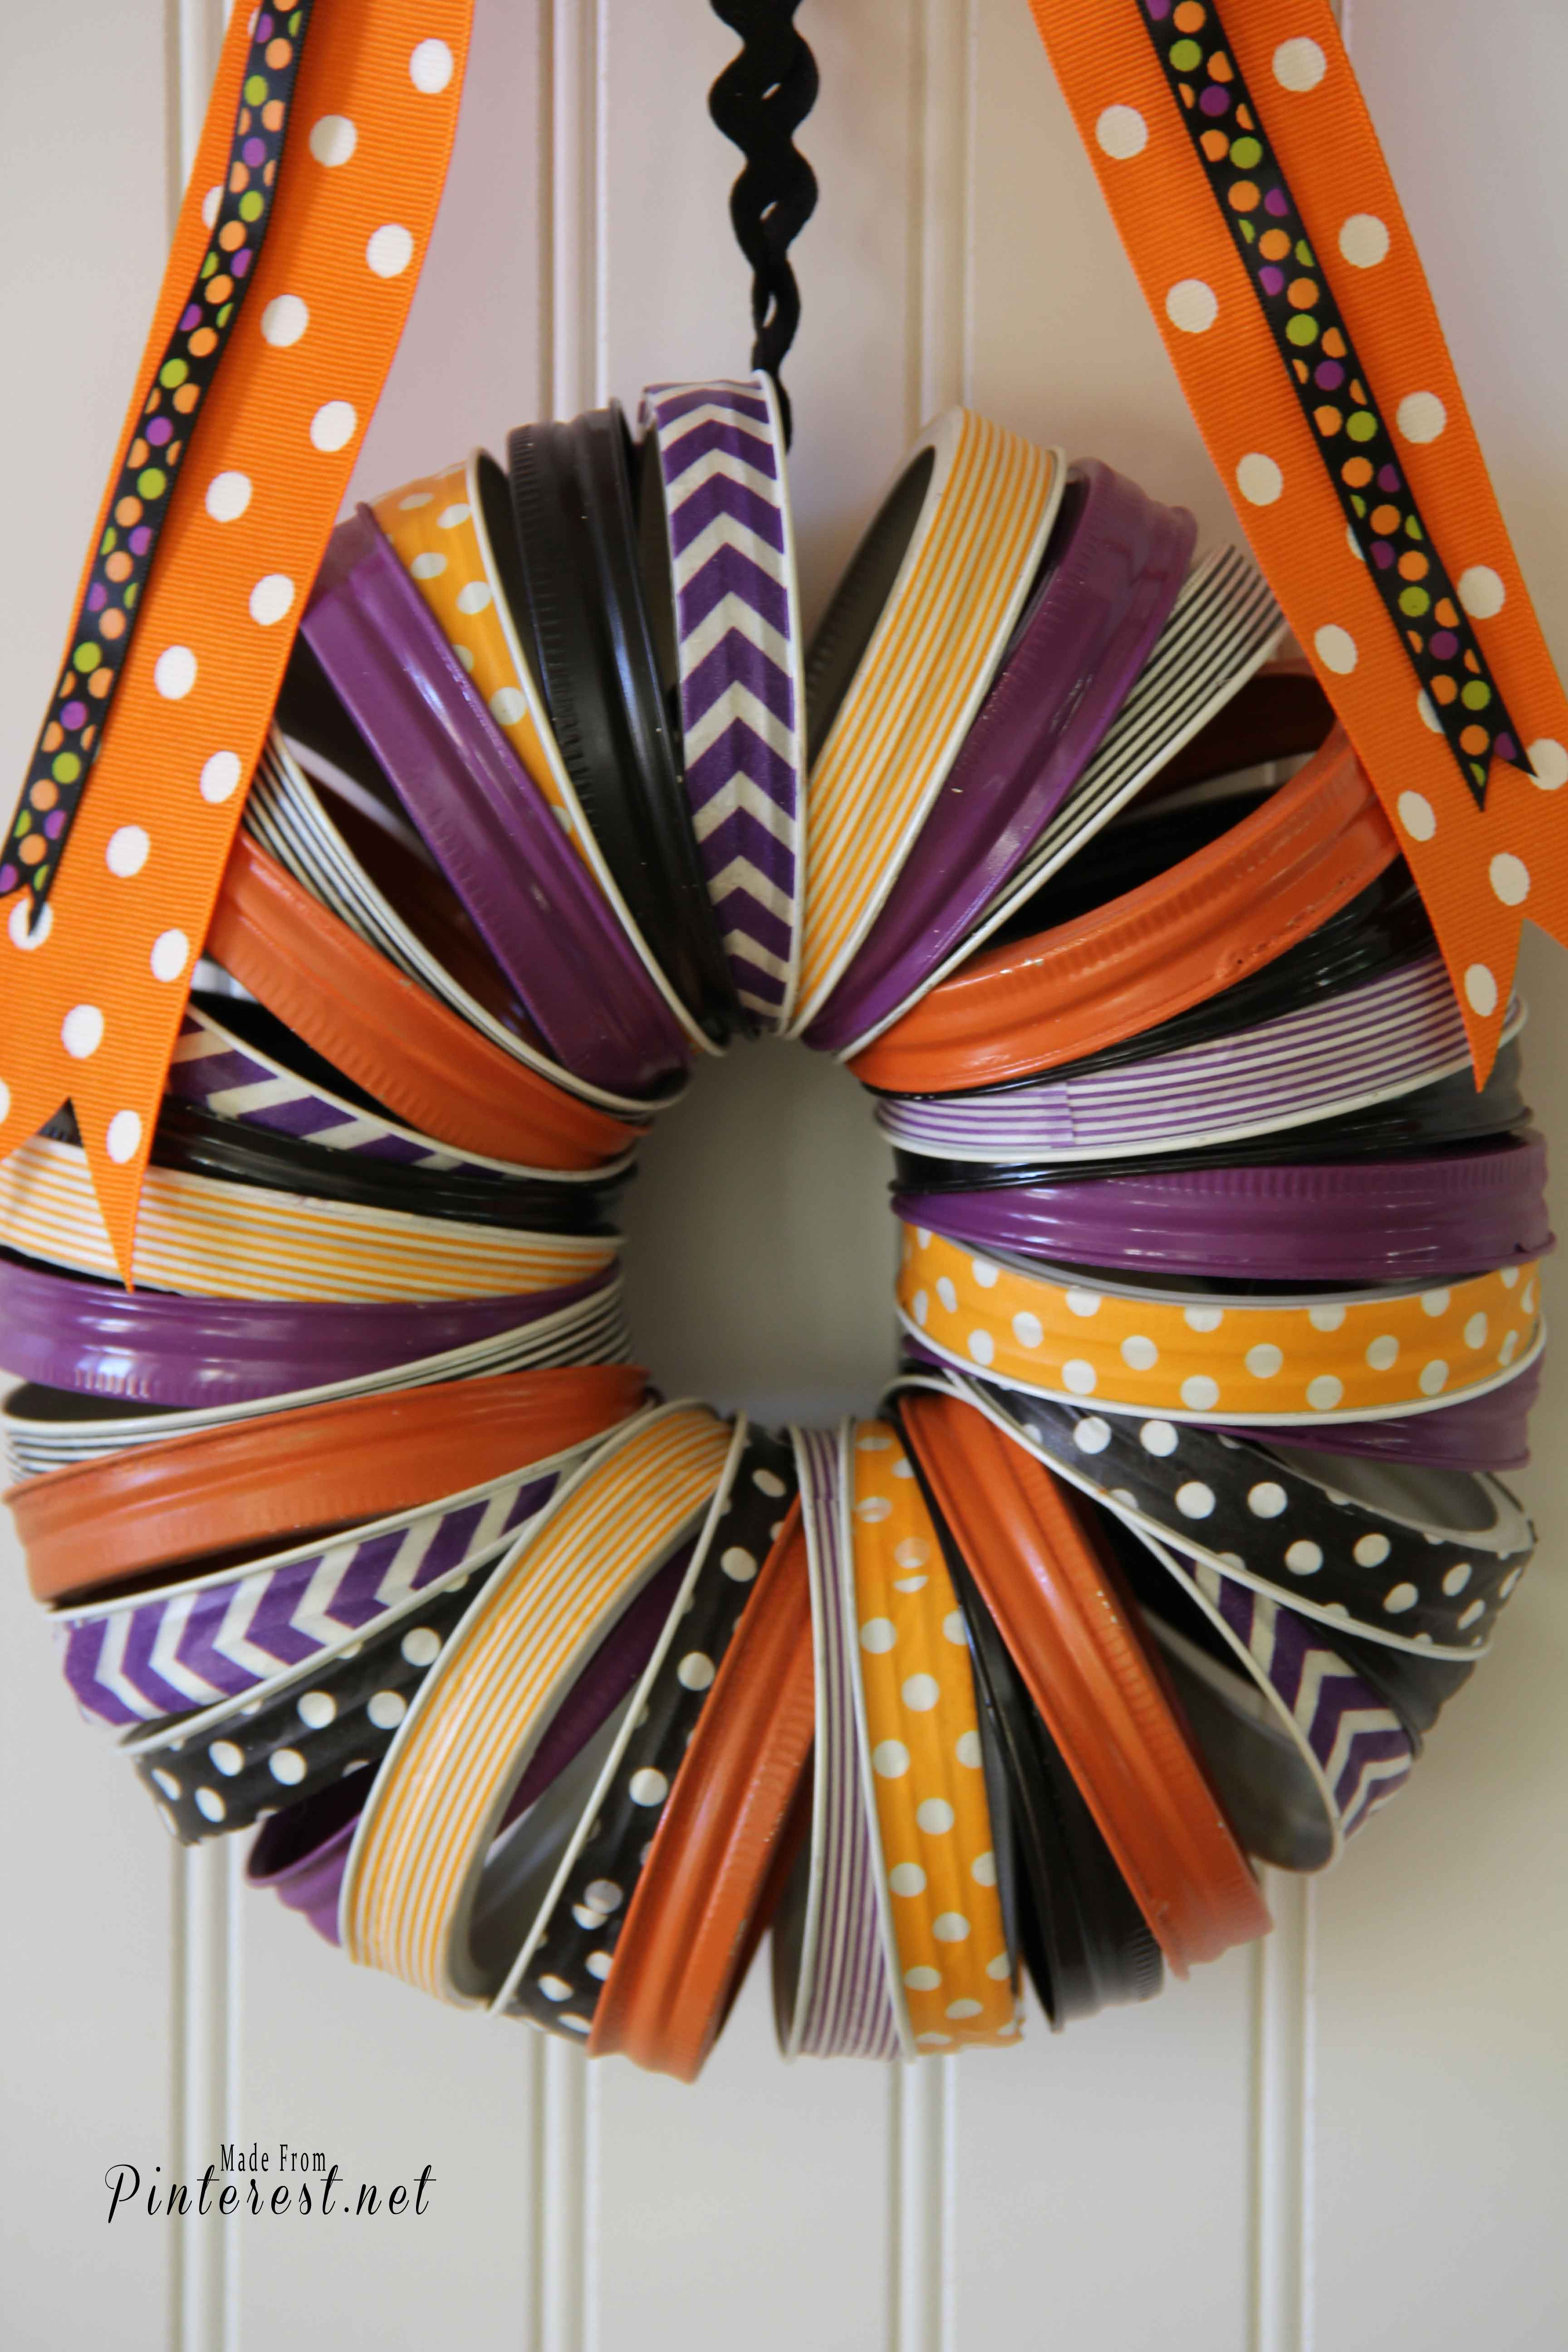 Diy halloween wreath - Halloween Wreath Make This Darling Halloween Wreath With Mason Jar Rings And Washi Tape